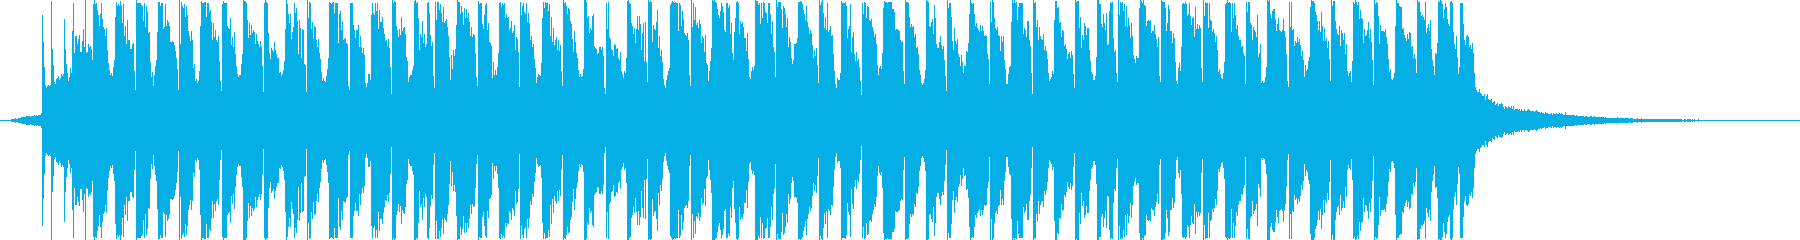 Short BGM suitable for ghosts and Halloween's reproduced waveform